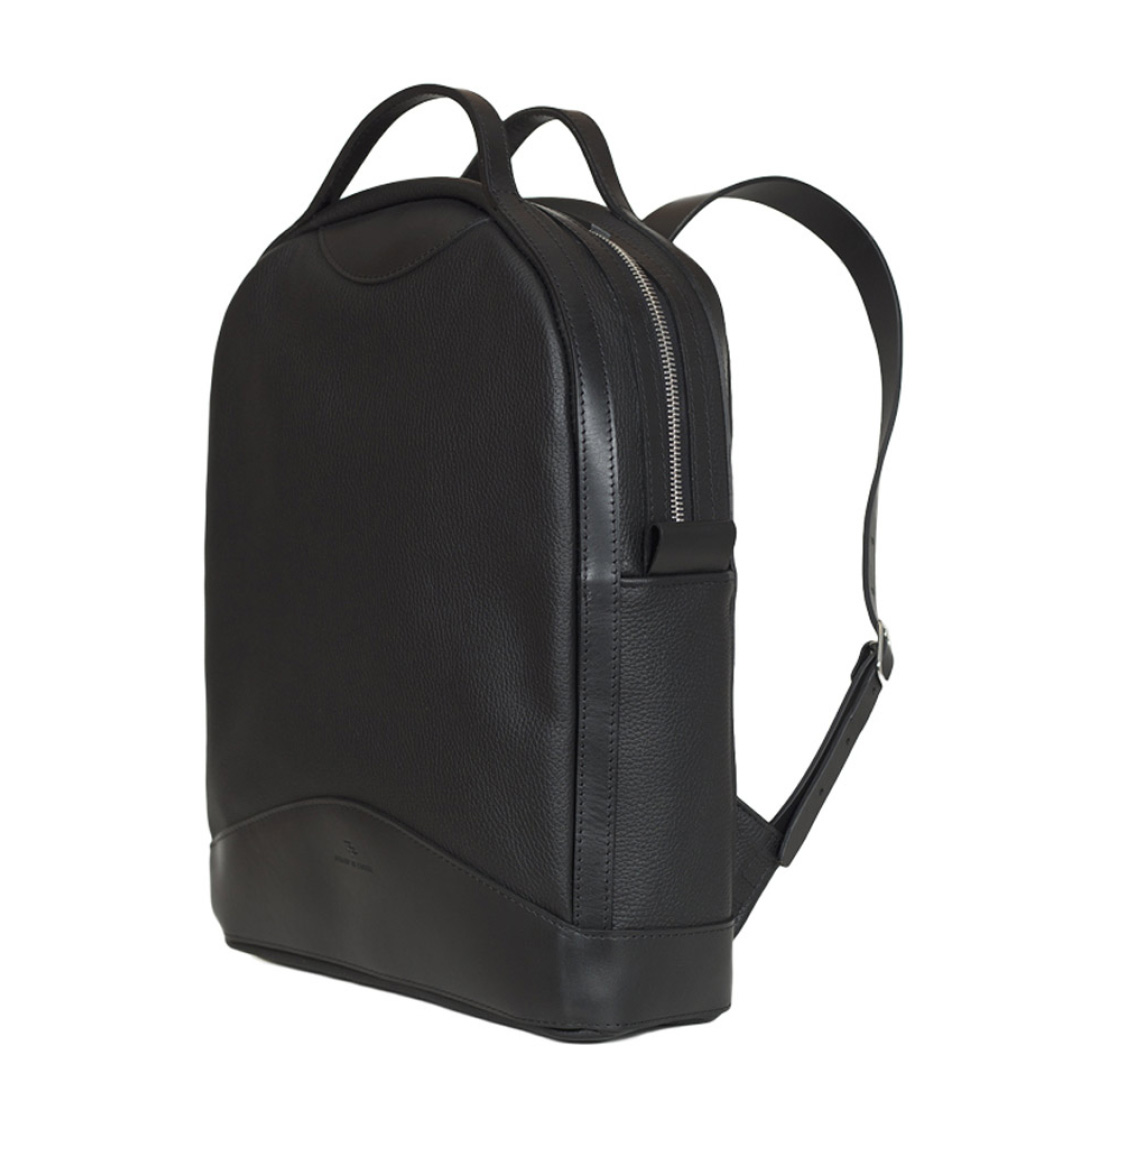 Atelier De L' Armee Voyager Pack Leather Black